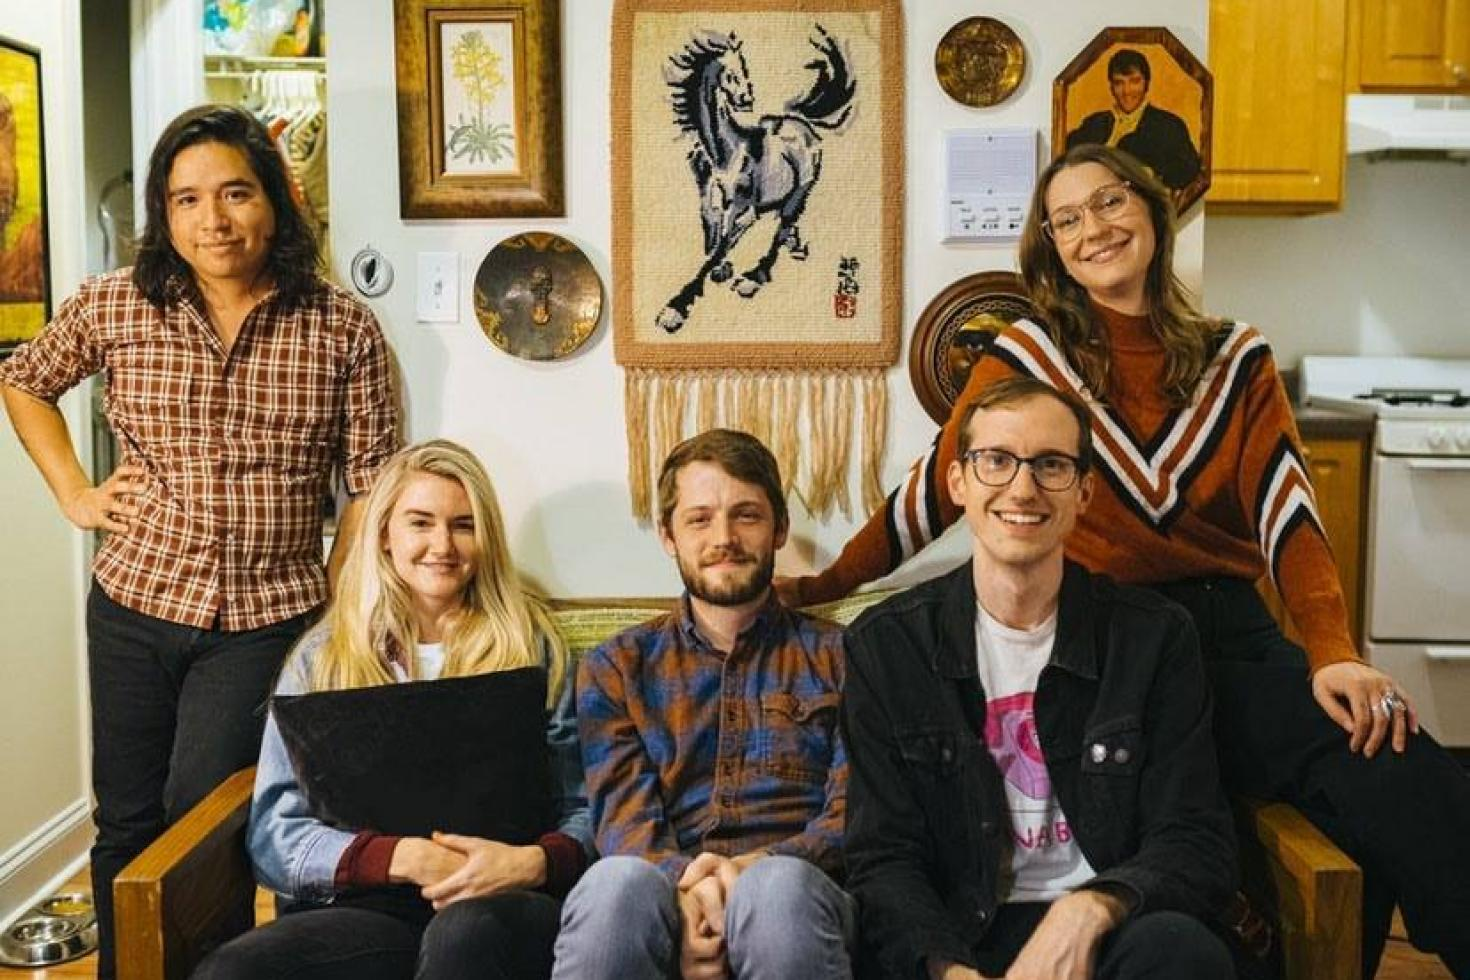 Track-by-track: Kittyhawk's Mark Jaeschke about 'Mikey's Favorite Songs'